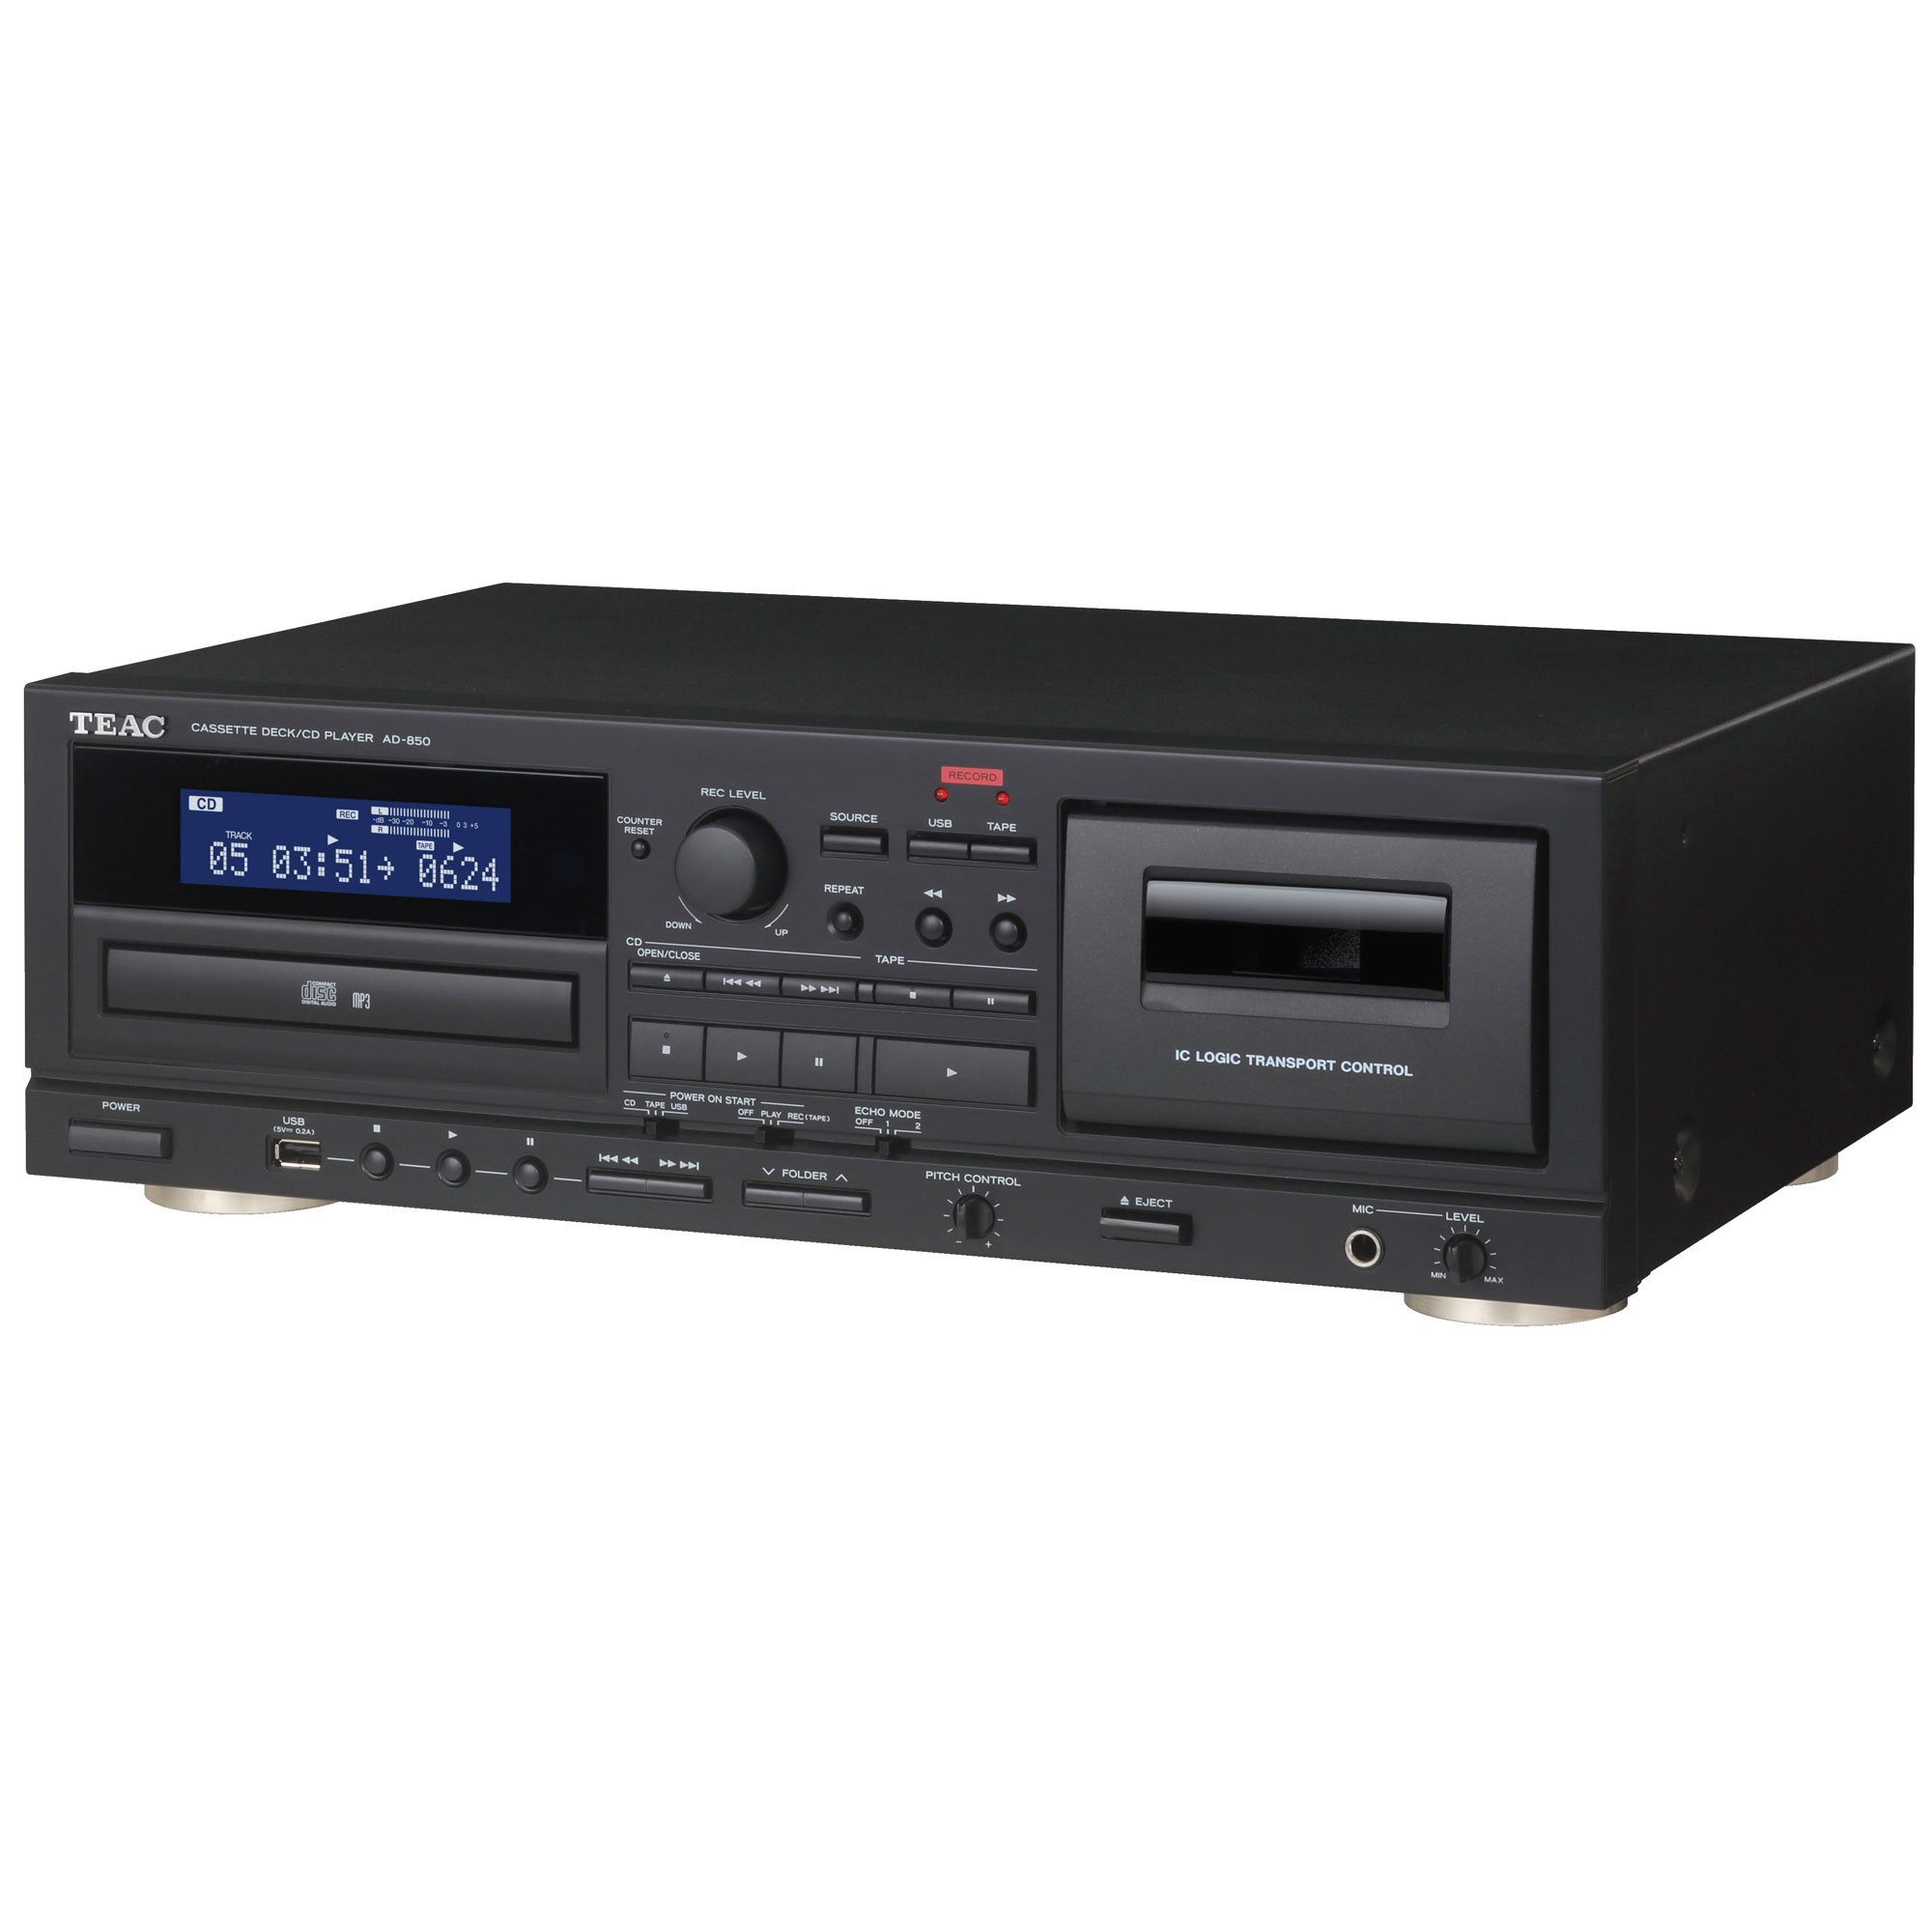 teac ad 850 kassettendeck cd player mit aufnahmefunktion. Black Bedroom Furniture Sets. Home Design Ideas